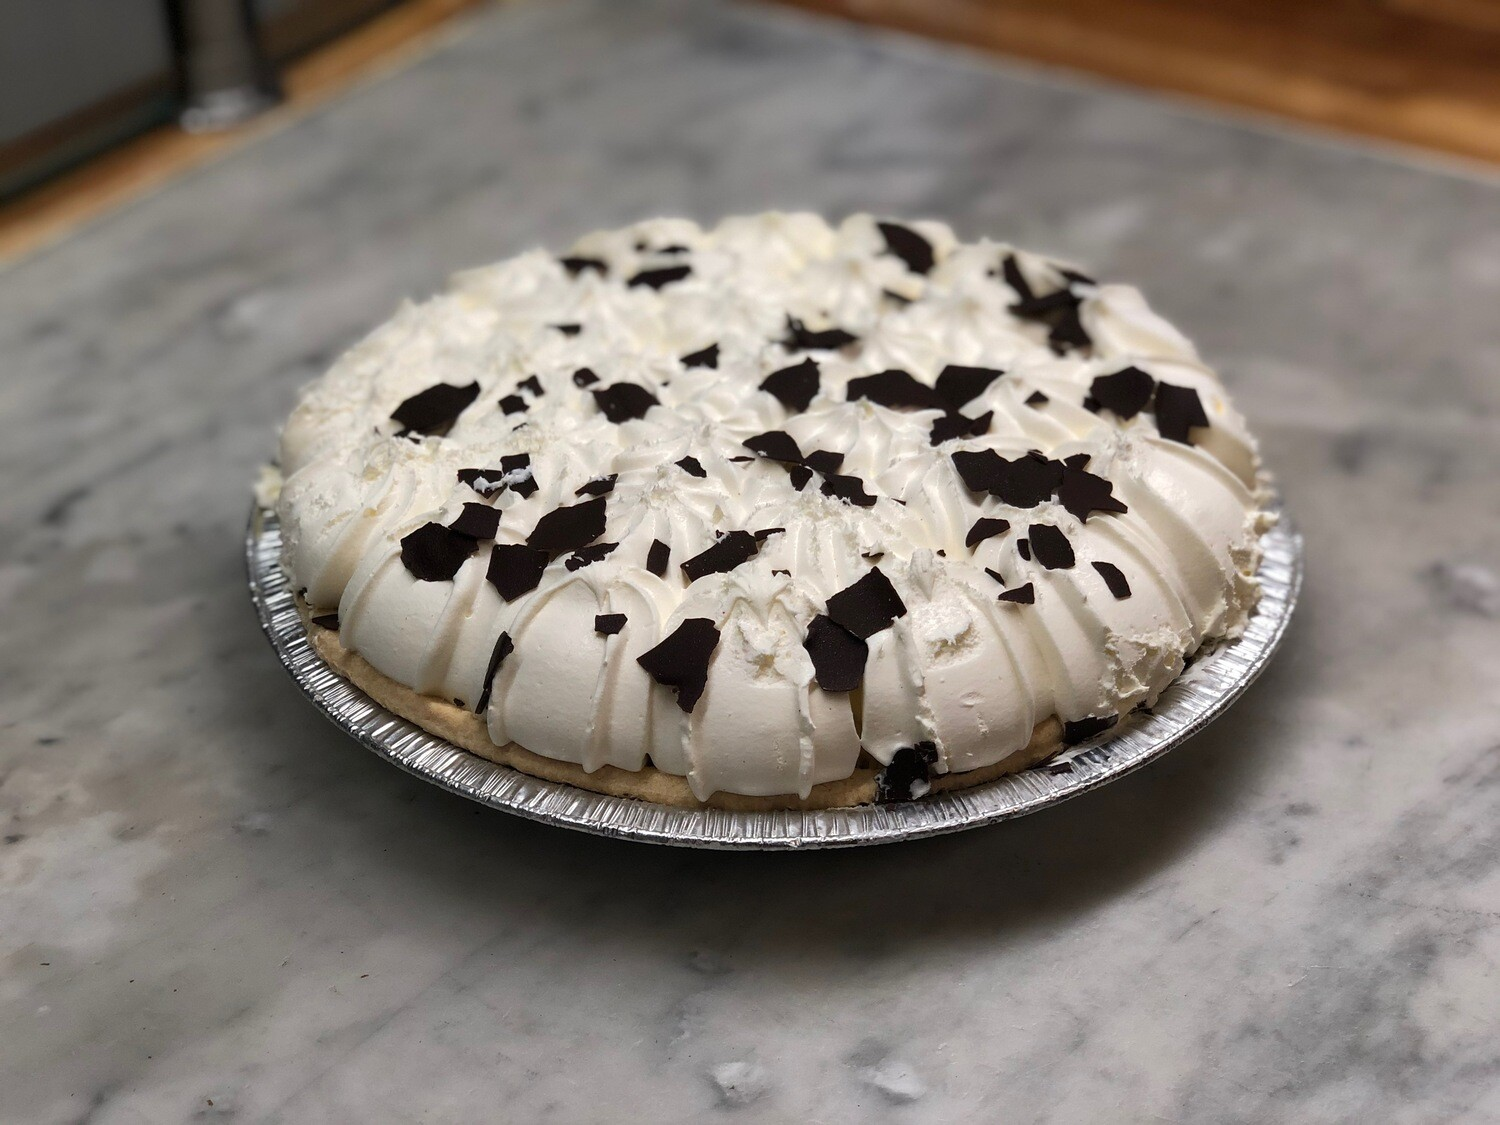 Easter Preorder - CHOCOLATE CREAM PIE